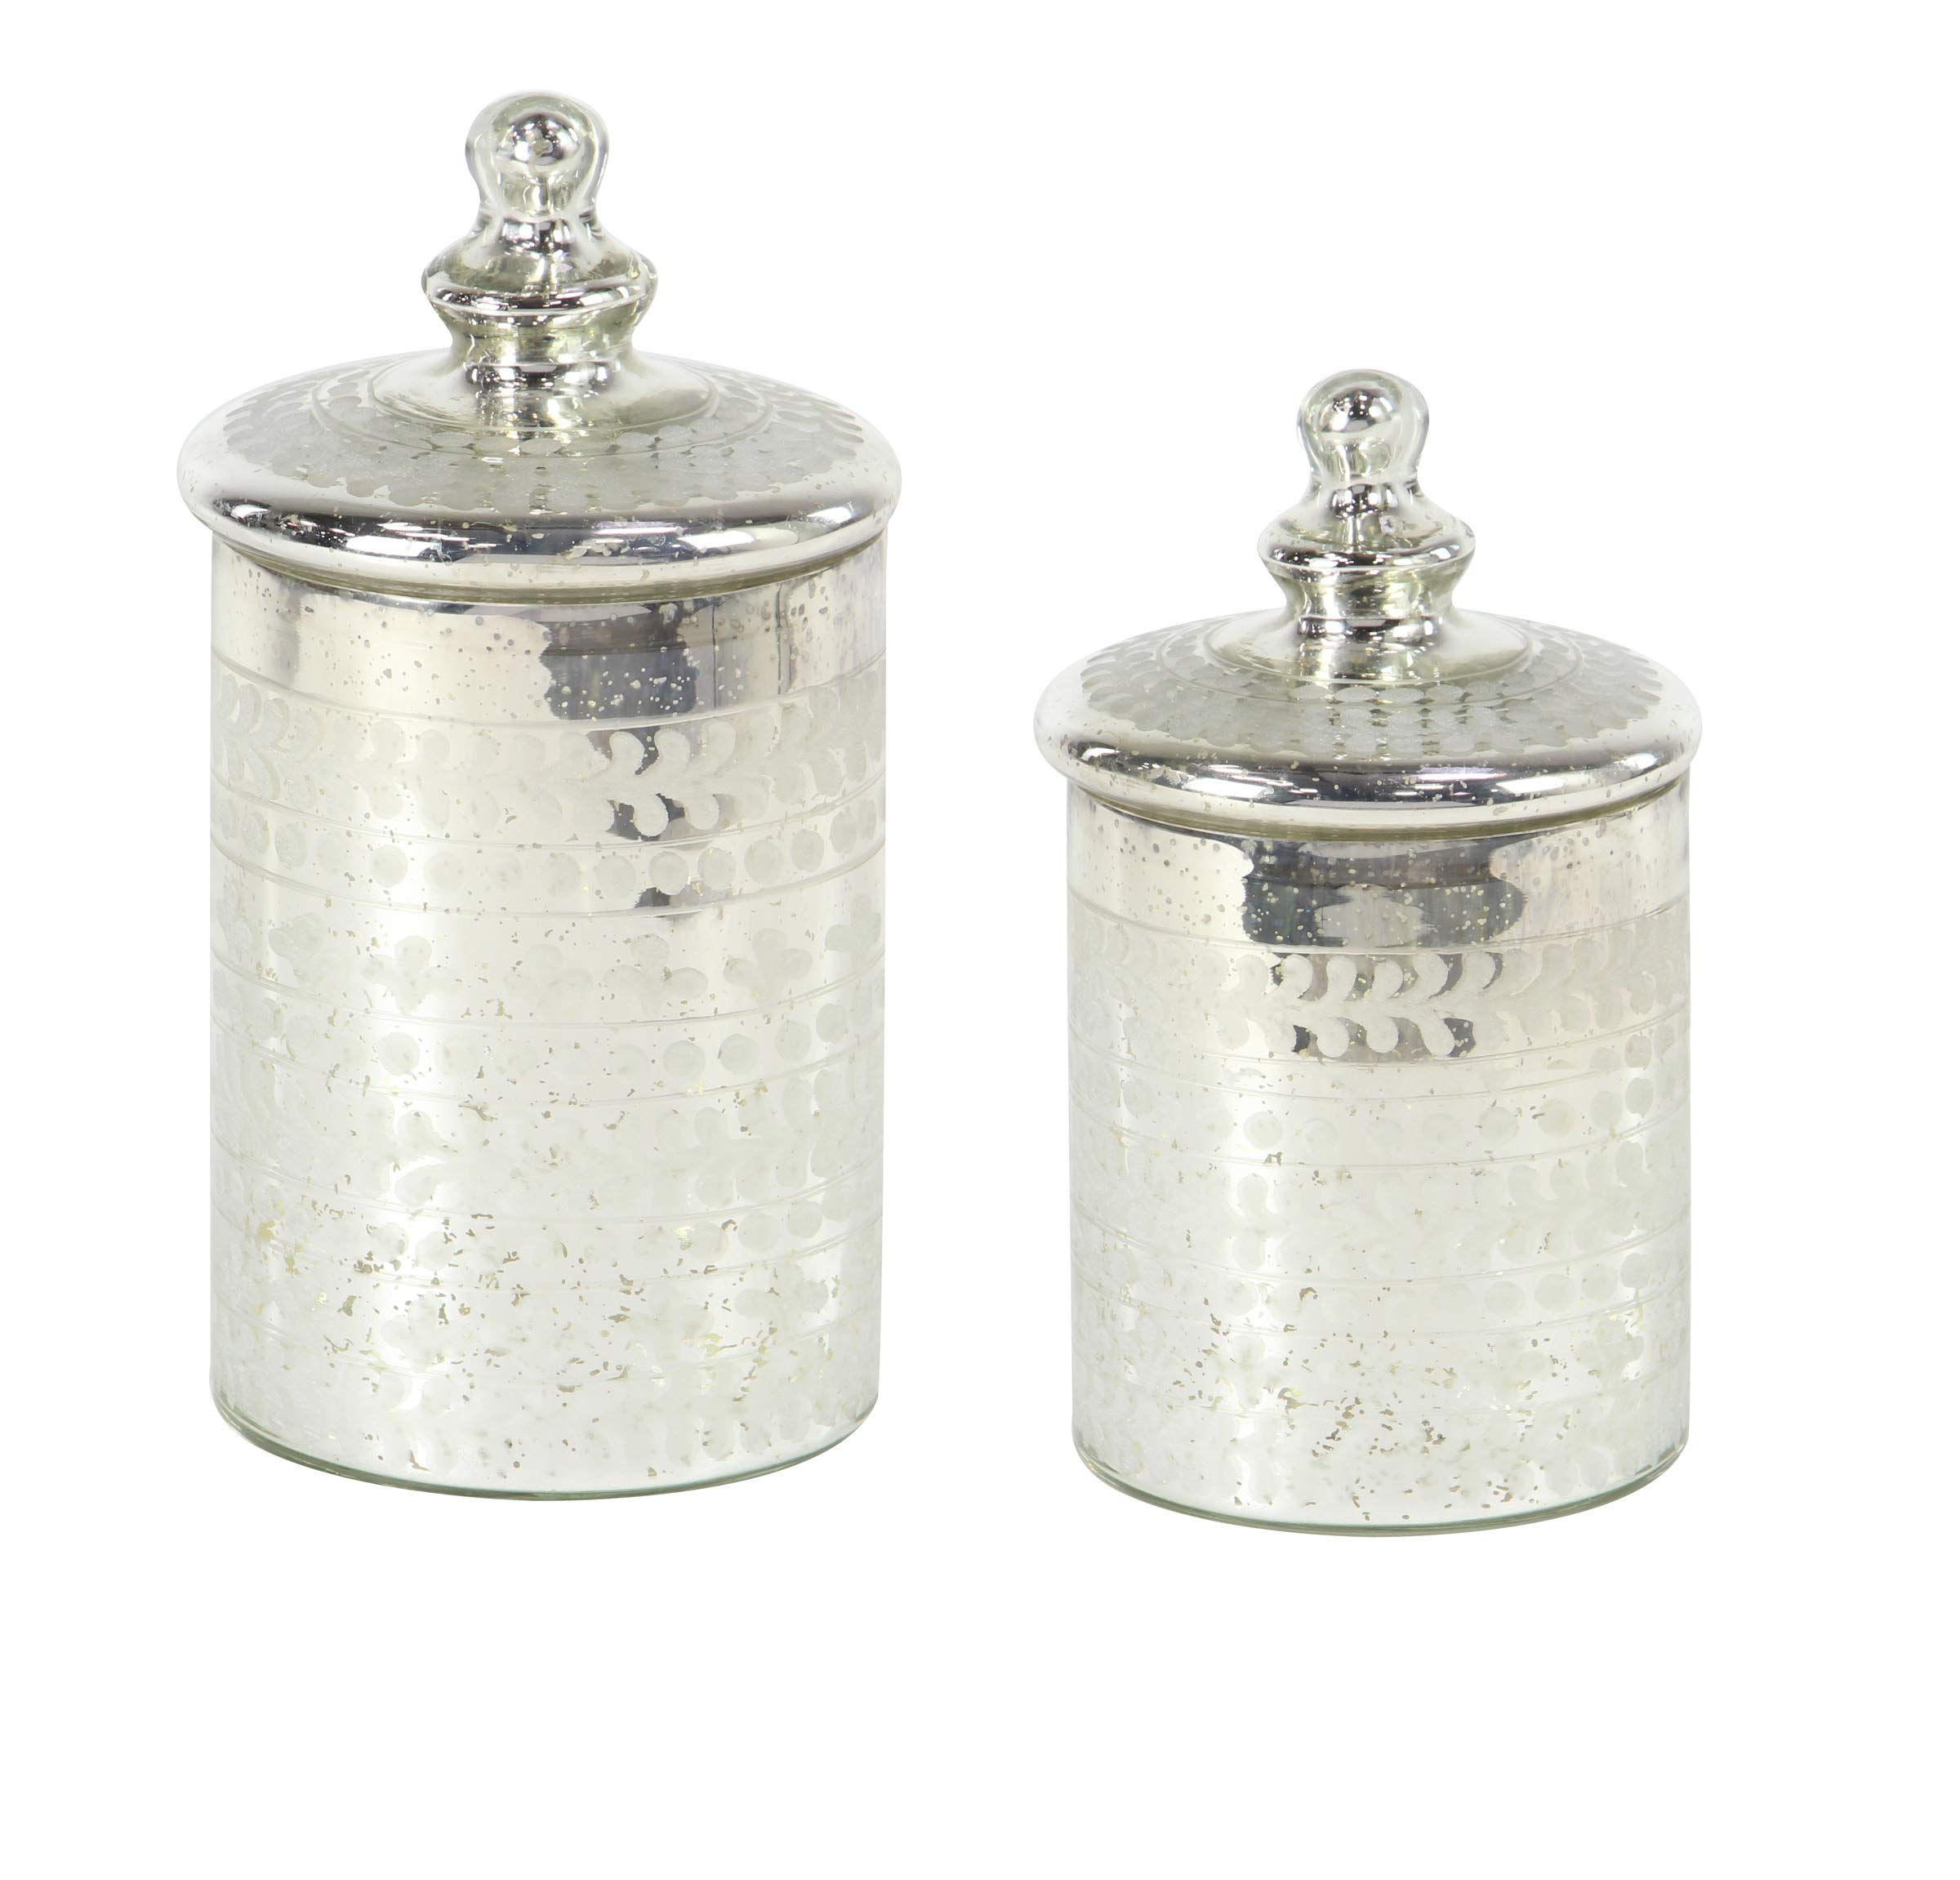 Deco 79 24720 Glam Glass Canisters, 7'' W x 12'' H, Silver